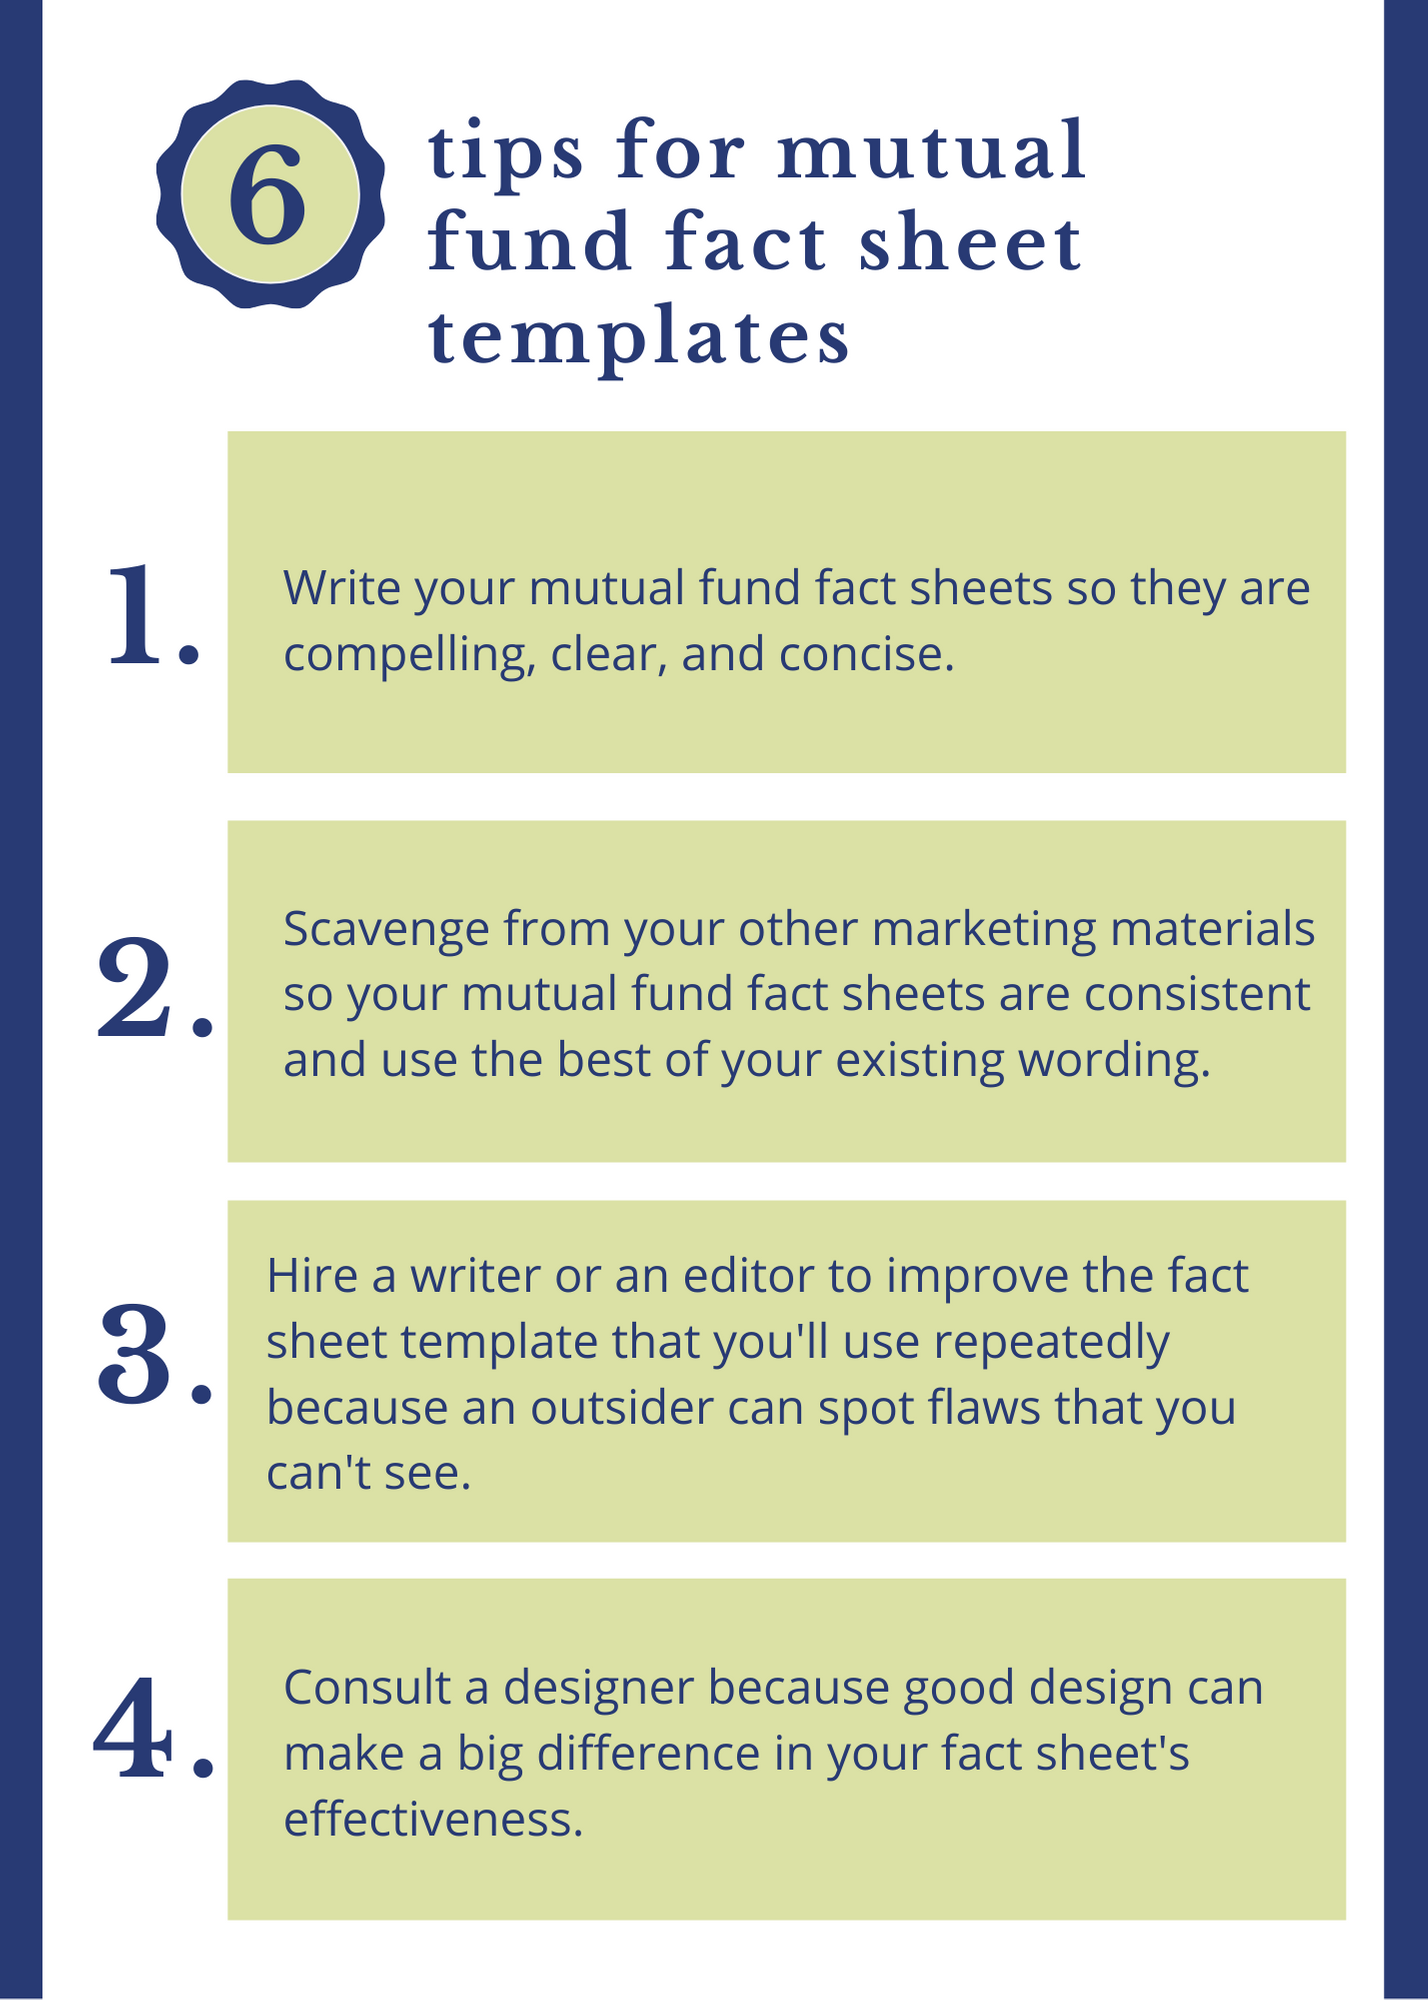 4 Tips For Mutual Fund Fact Sheet Templates Susan Weiner S Blog On Investment Writing